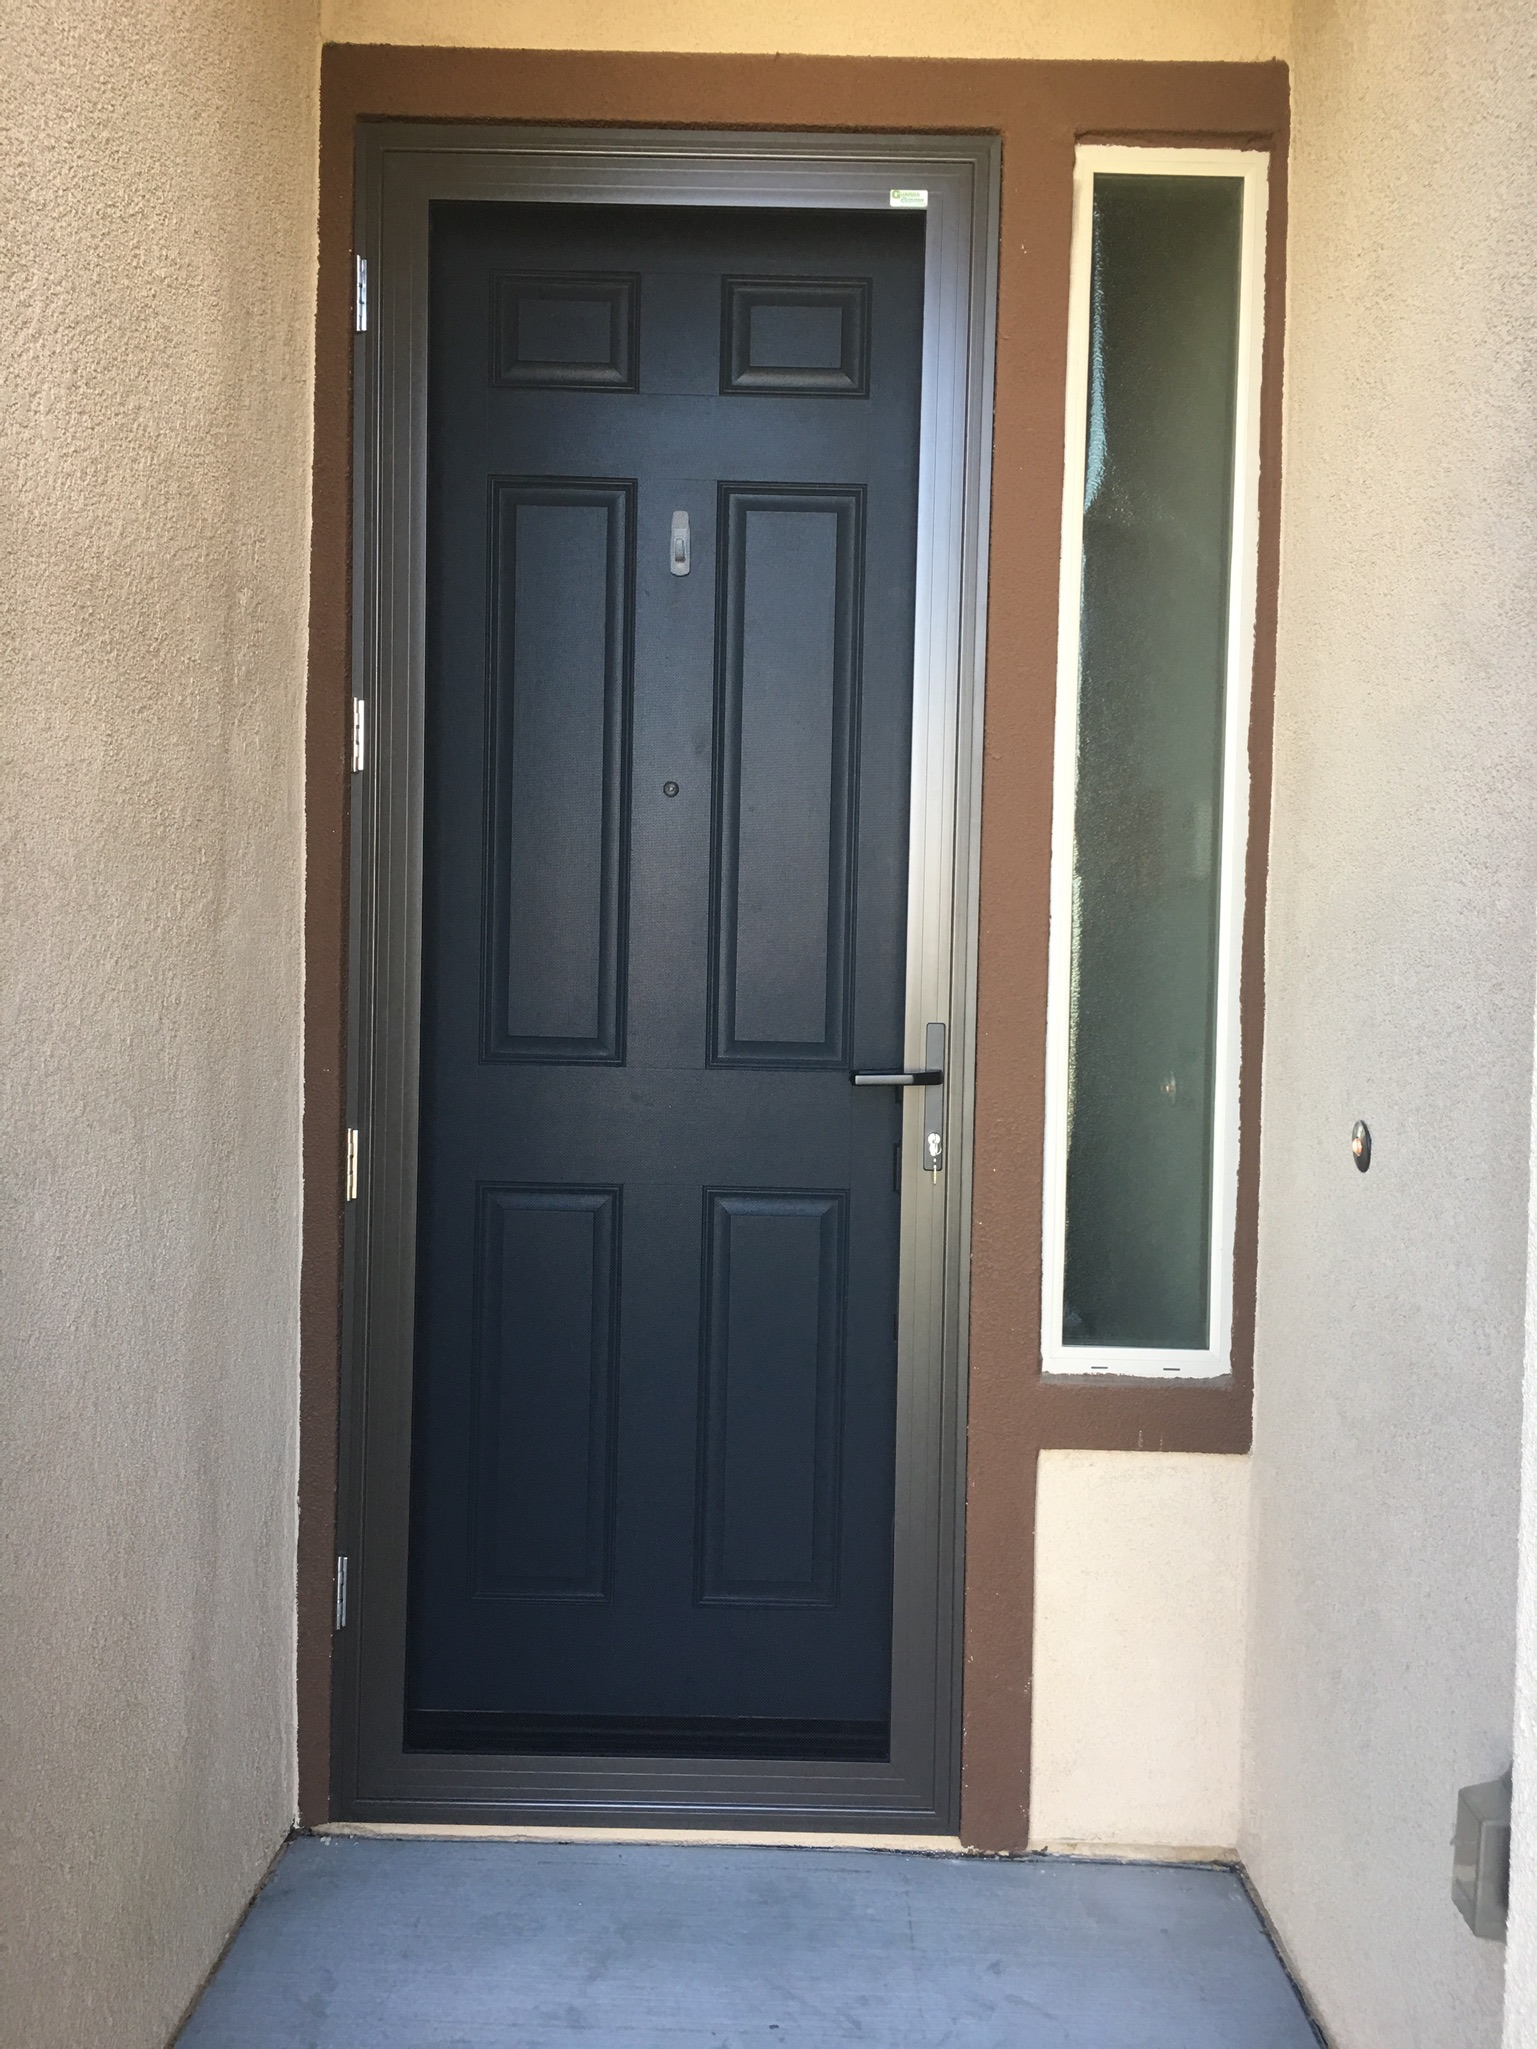 3'x8' bronze Guarda premium security screen door installed 1/6 in Summerly Homes in Lake Elsinore - 1